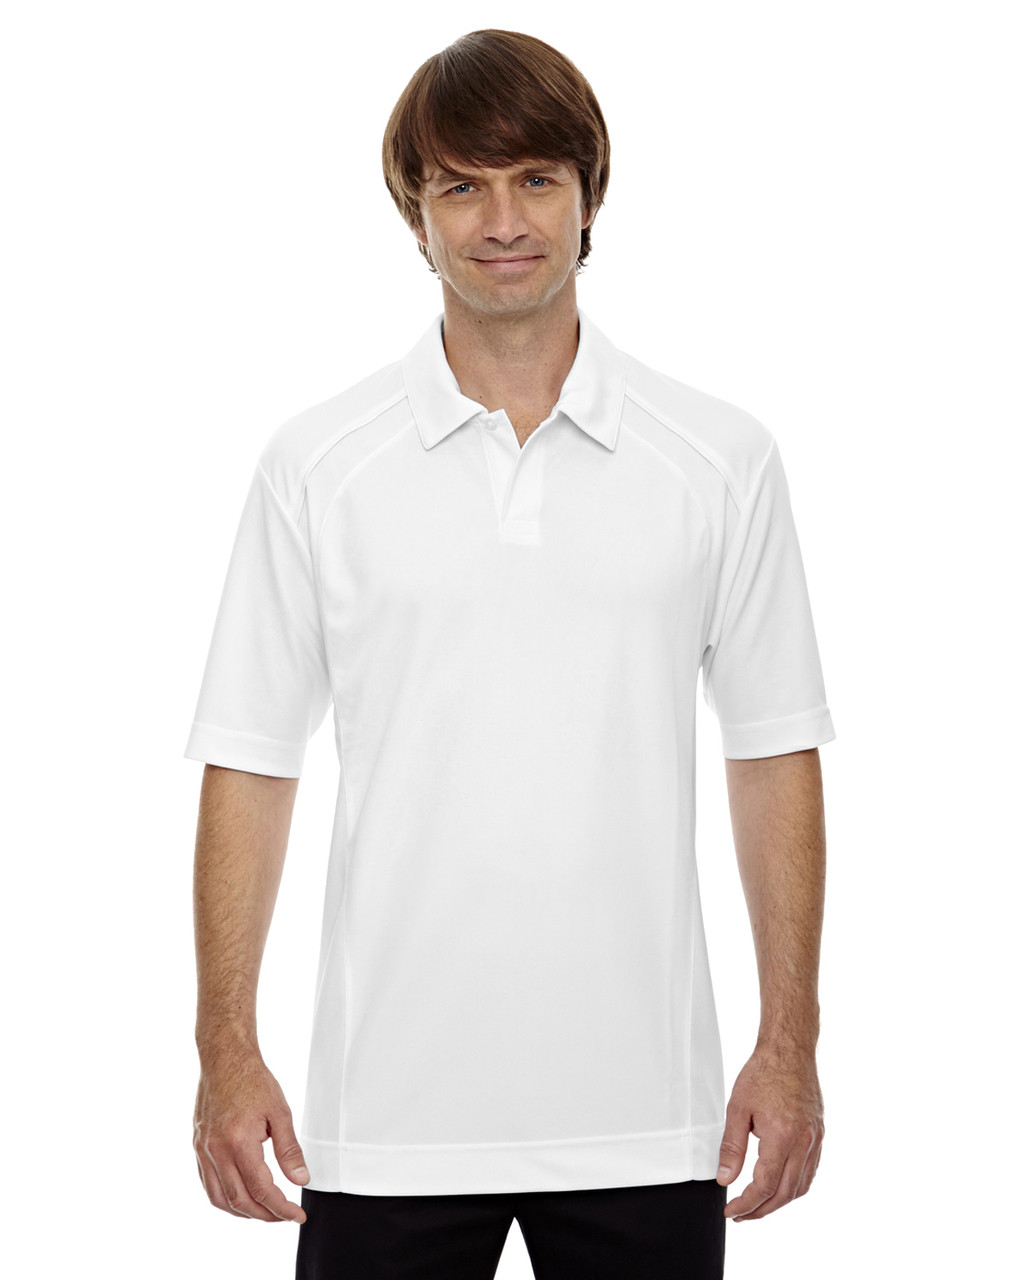 White - 88632 North End Men's Recycled Polyester Performance Pique Polo Shirt   Blankclothing.ca